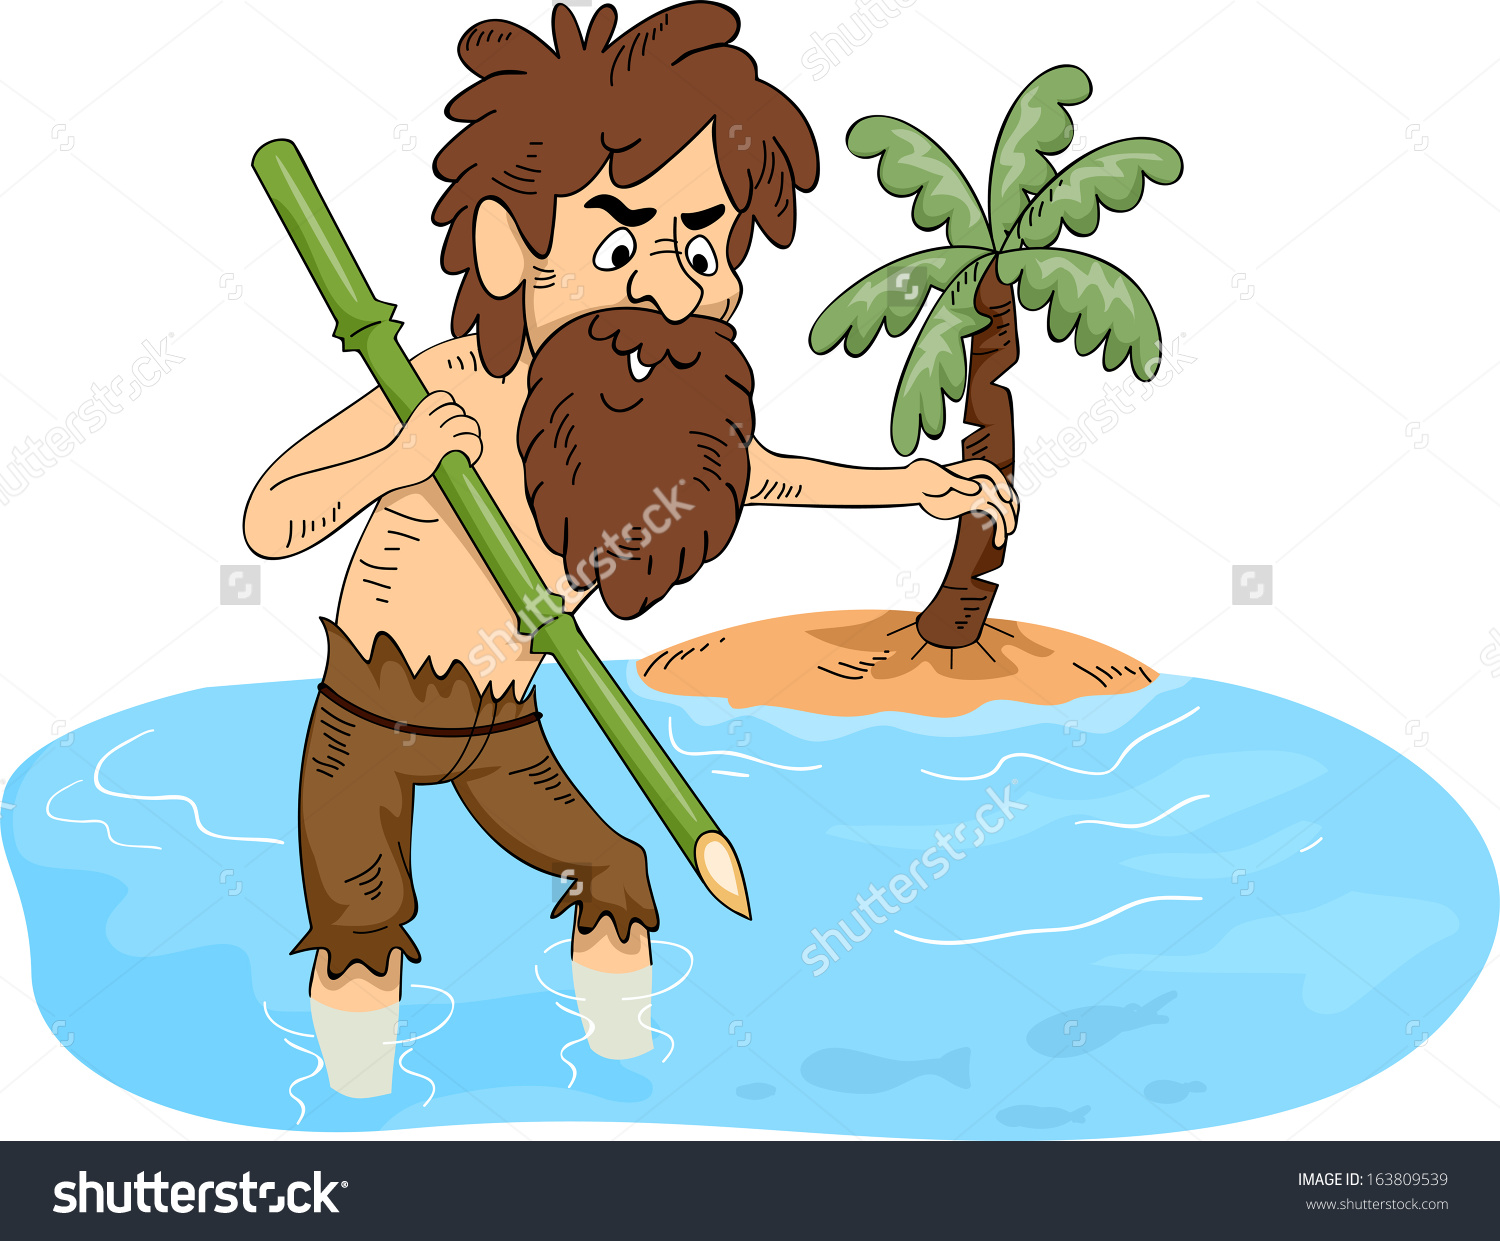 Stranded on an island clipart.